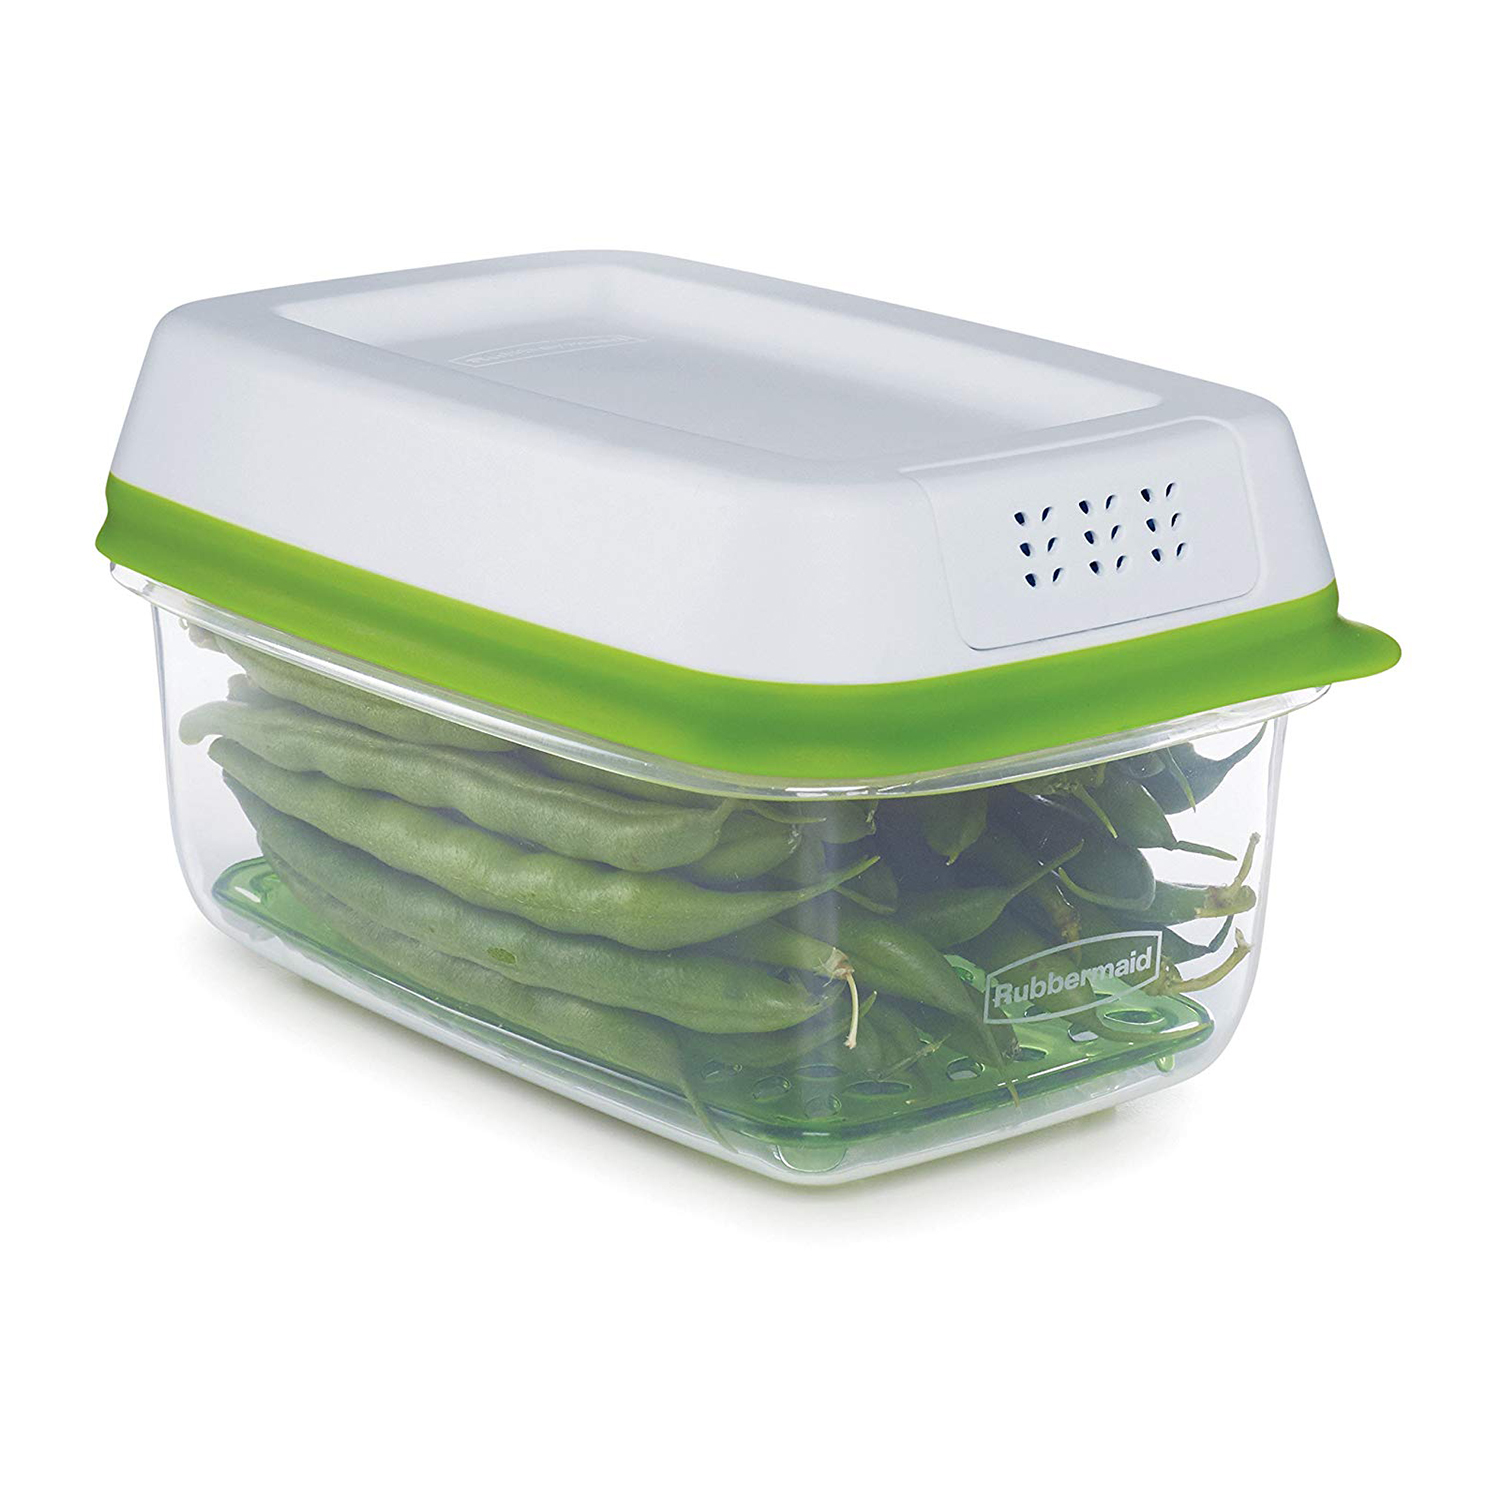 rubbermaid-freshworks-produce-saver-small-rectangle-4-cup-container.jpg